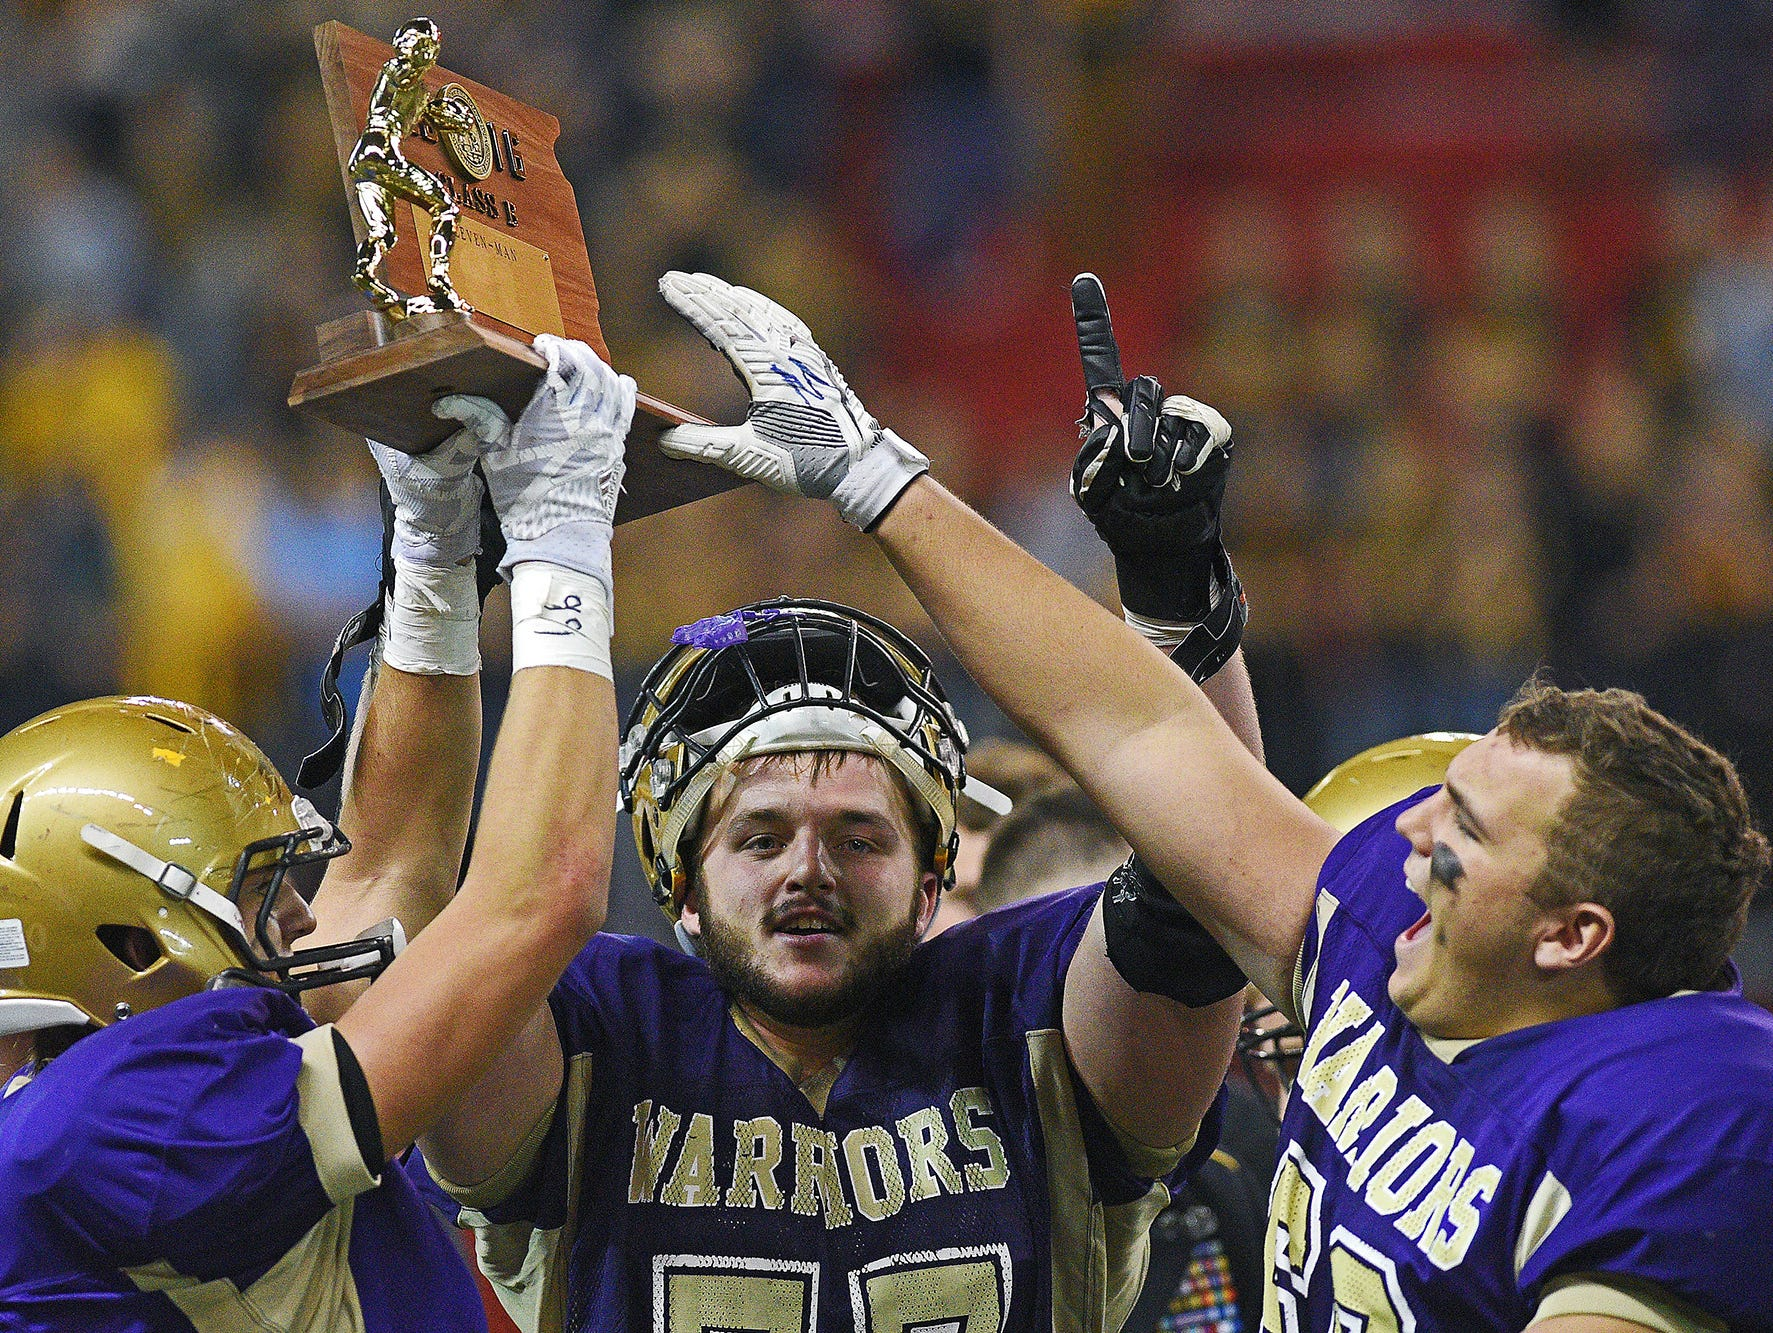 Winner players, including John Kludt (77), center, celebrate their 54-0 win over Groton Area in the 2016 South Dakota State Class 11B Football Championship game Friday, Nov. 11, 2016, at the DakotaDome on the University of South Dakota campus in Vermillion, S.D.